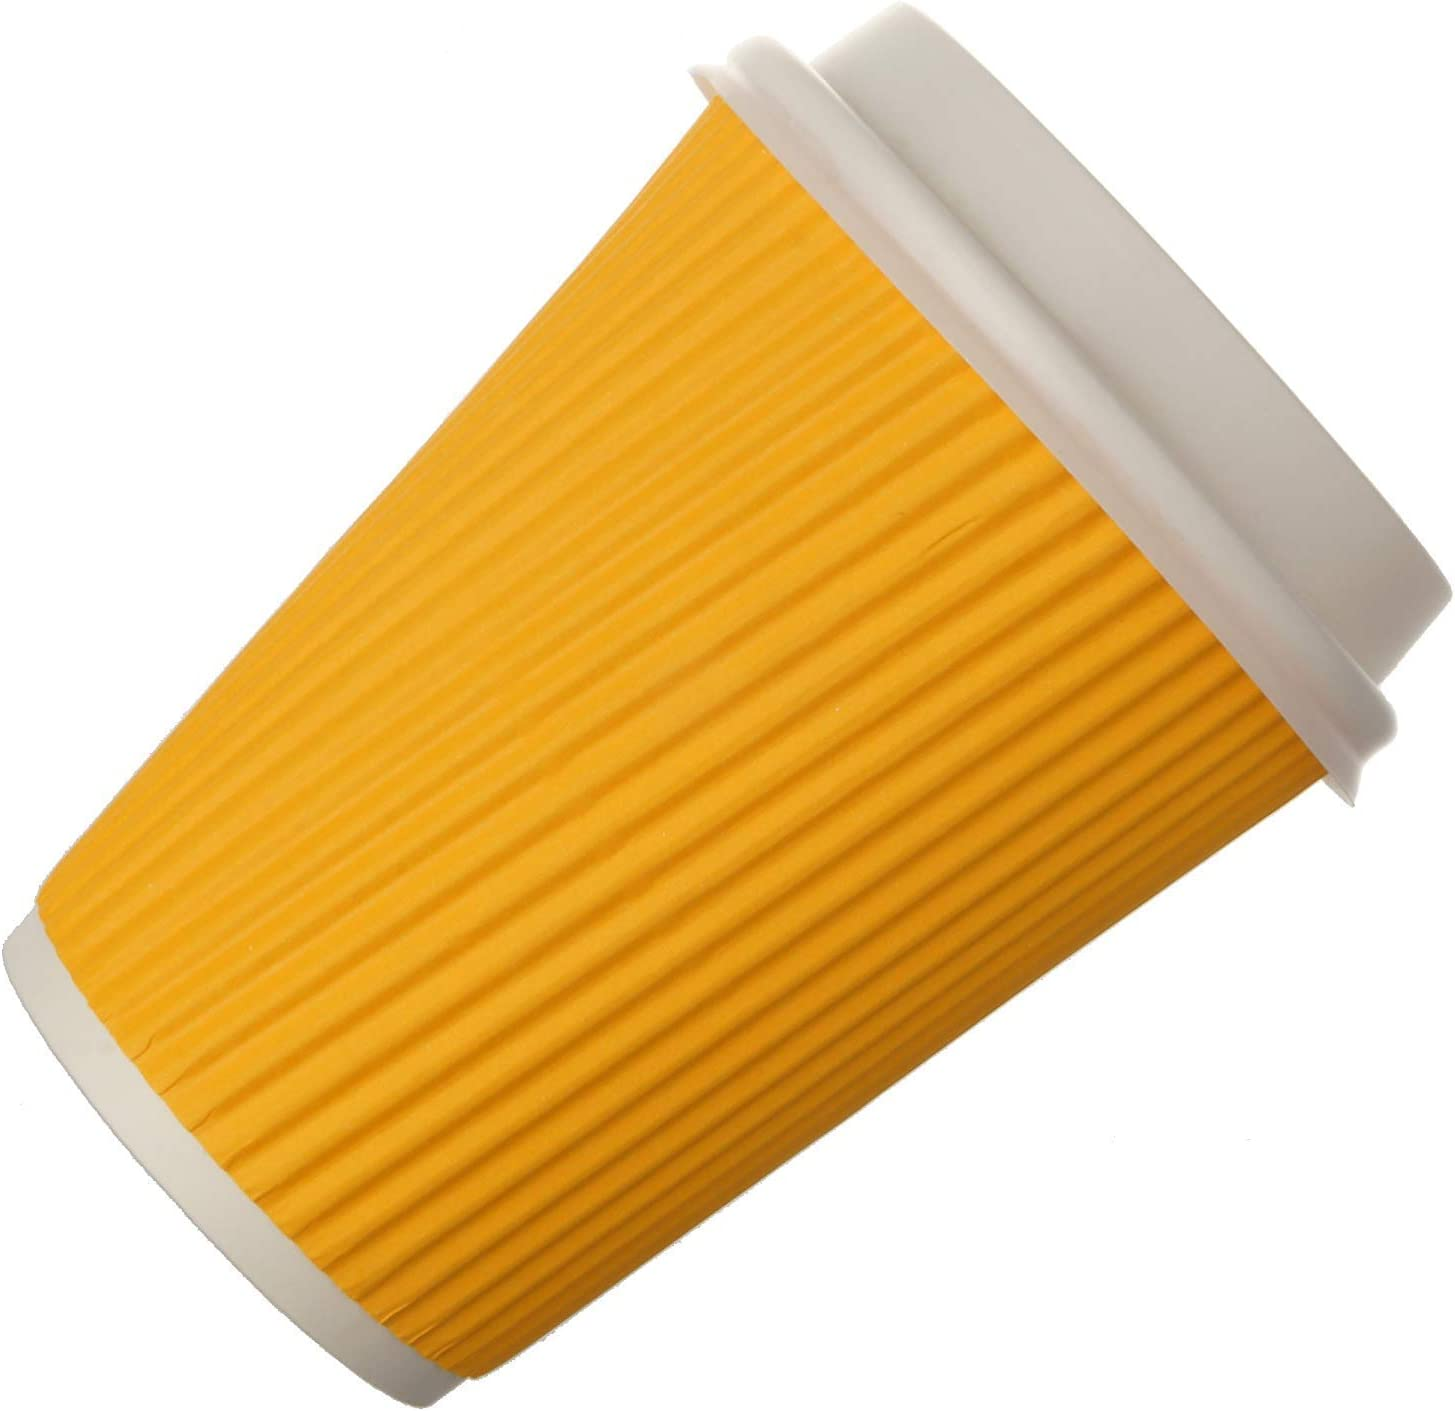 Snapcups Best Disposable Coffee Cups to Go - Premium Hot Paper Cup With Lids 12 Oz(30 count), Yellow - Perfect for Ripple and Insulated Cups - No Soaking or Smells - No Sleeves Needed